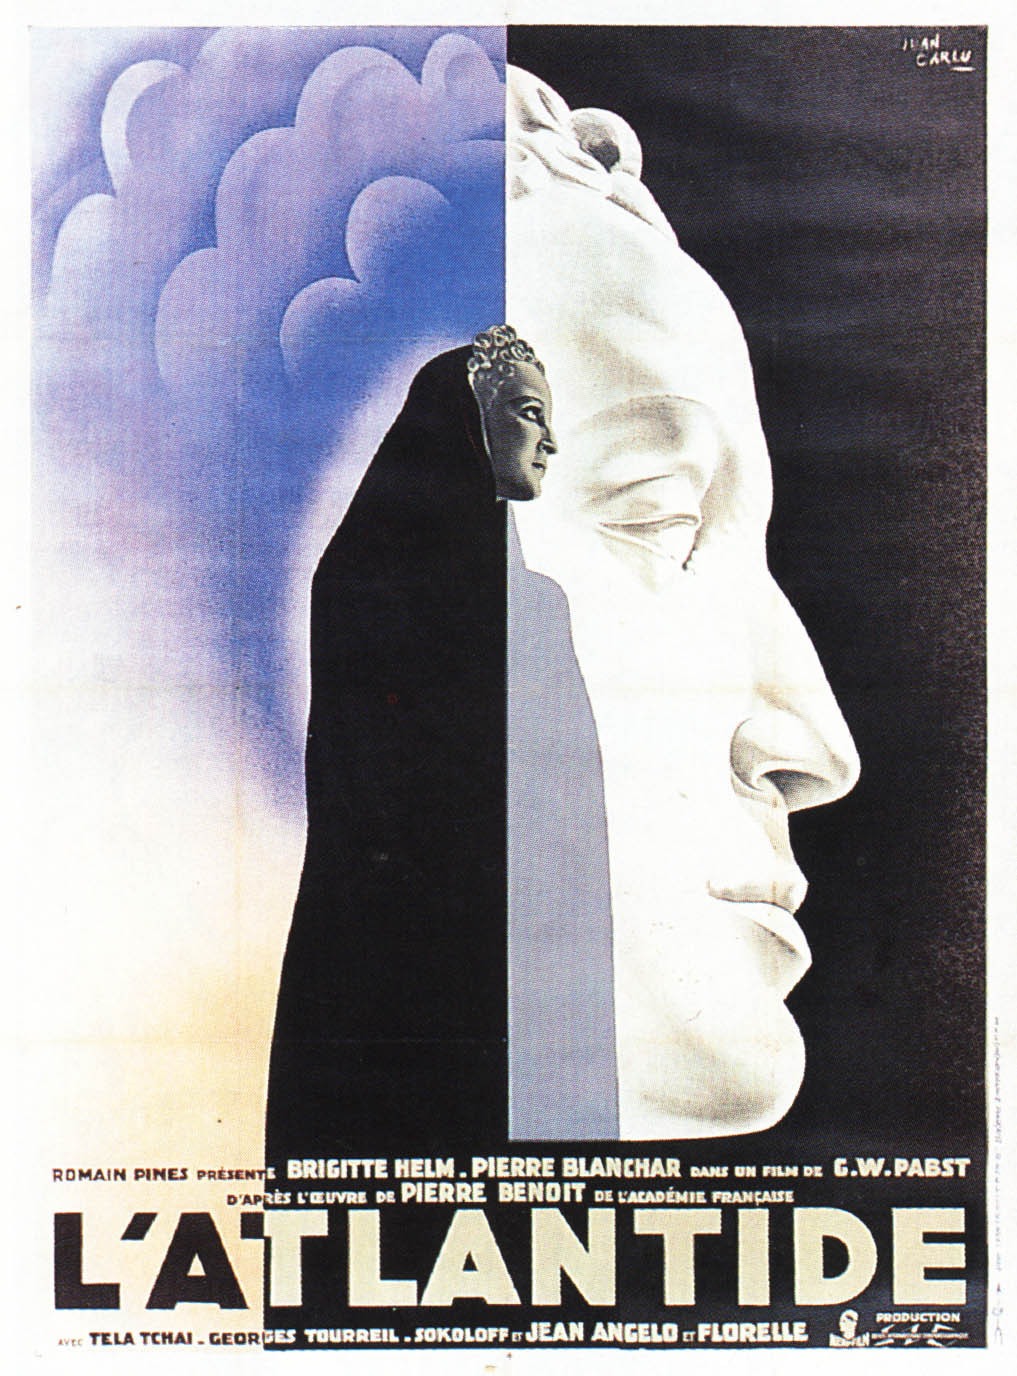 """Advertising poster for the movie """"L'Atlantide"""", 1932"""